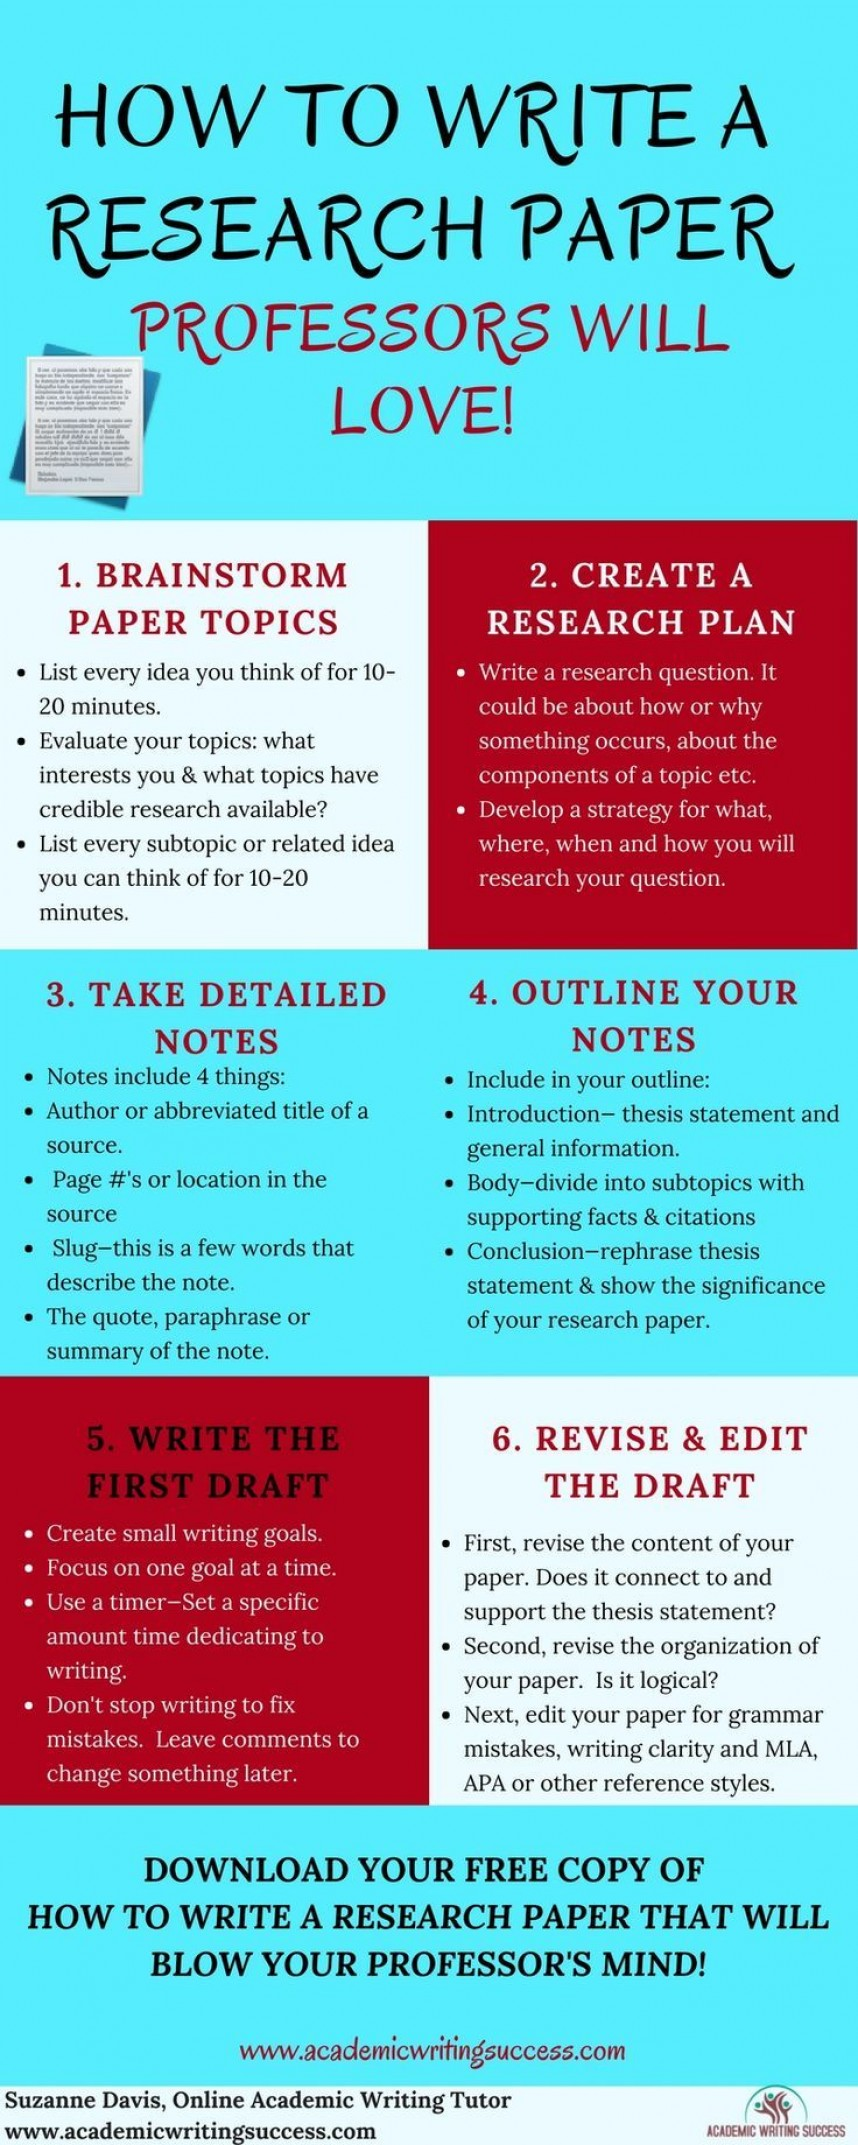 007 Research Paper Steps To Writing Fearsome A Introduction College Middle School